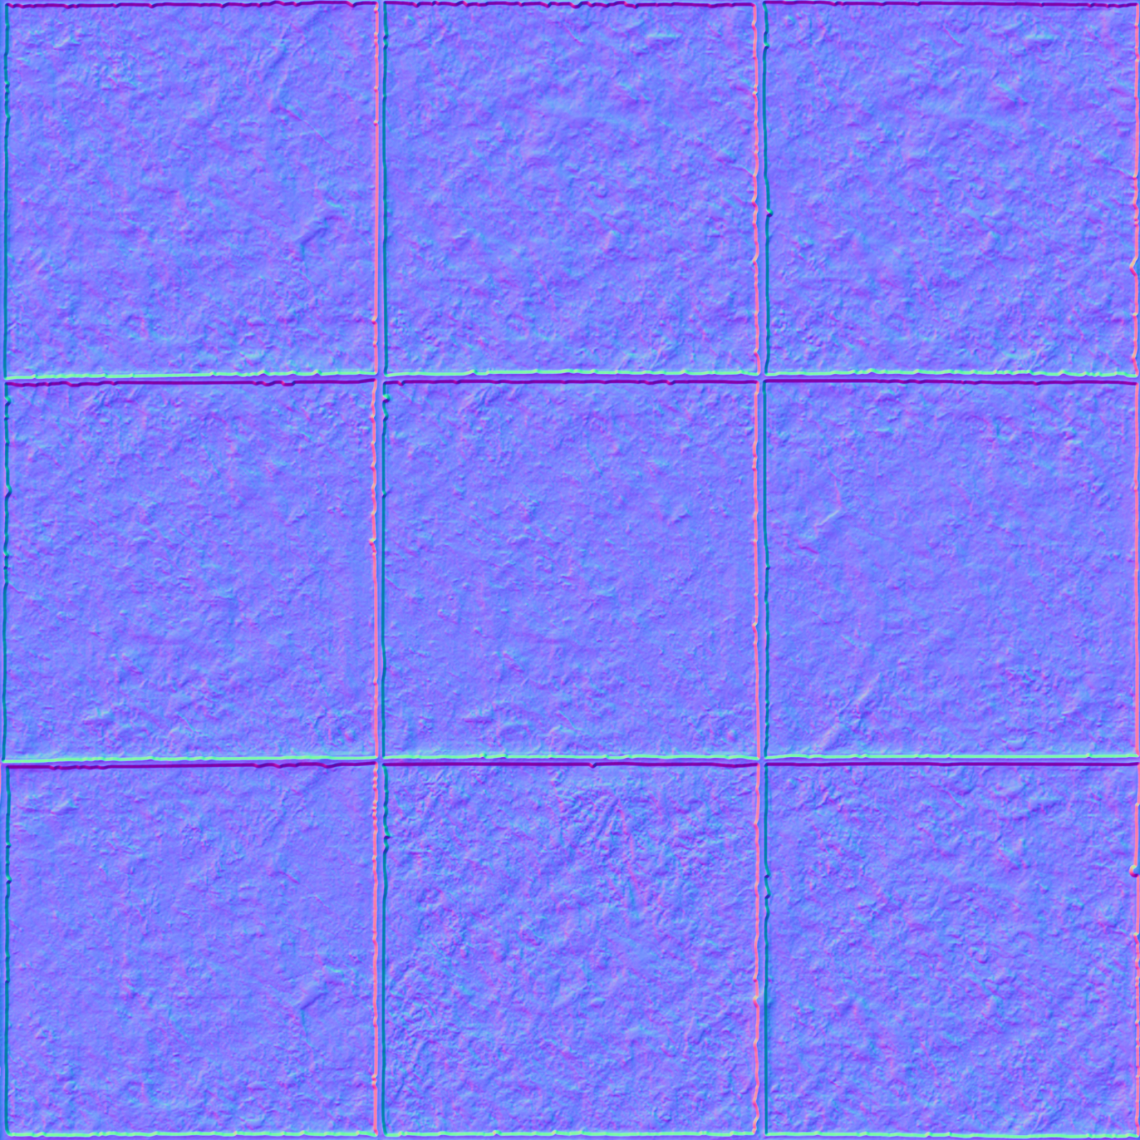 Green-Tiles-01-Normal - Seamless